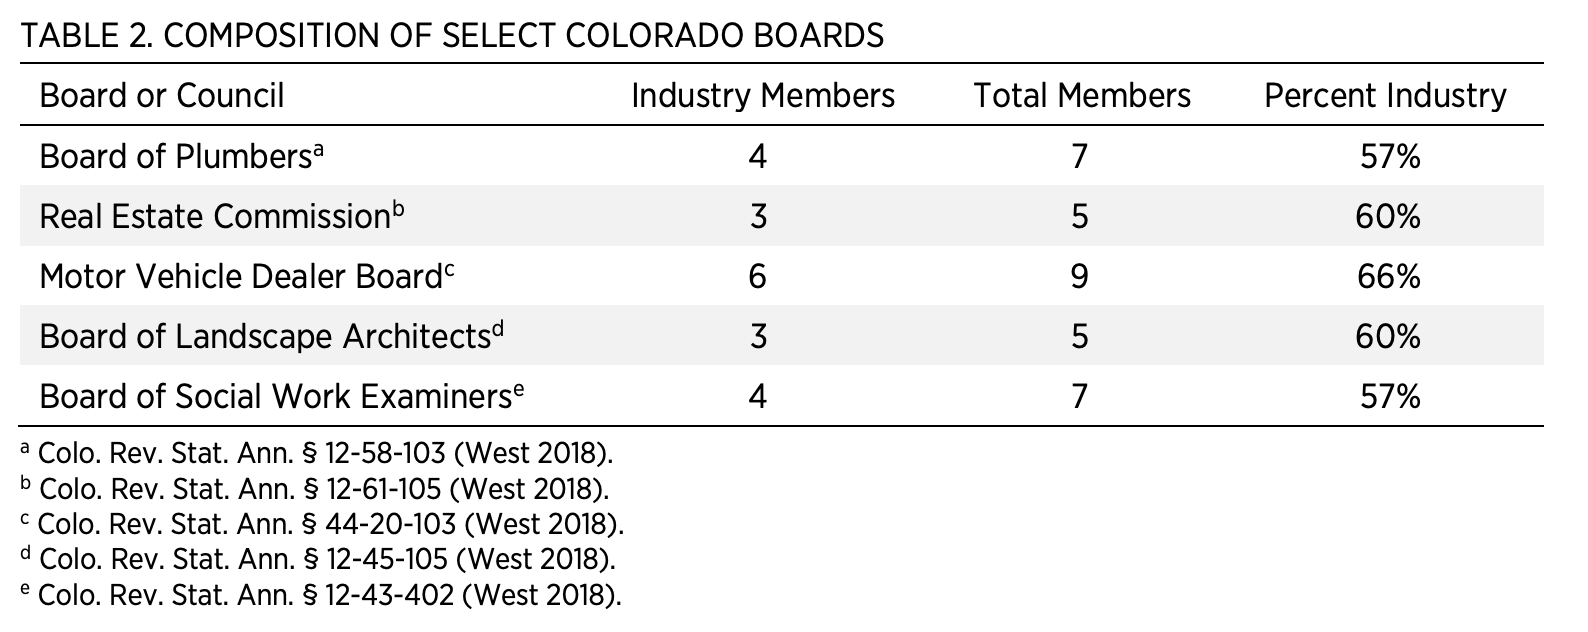 Table 2. Composition of Select Colorado Boards